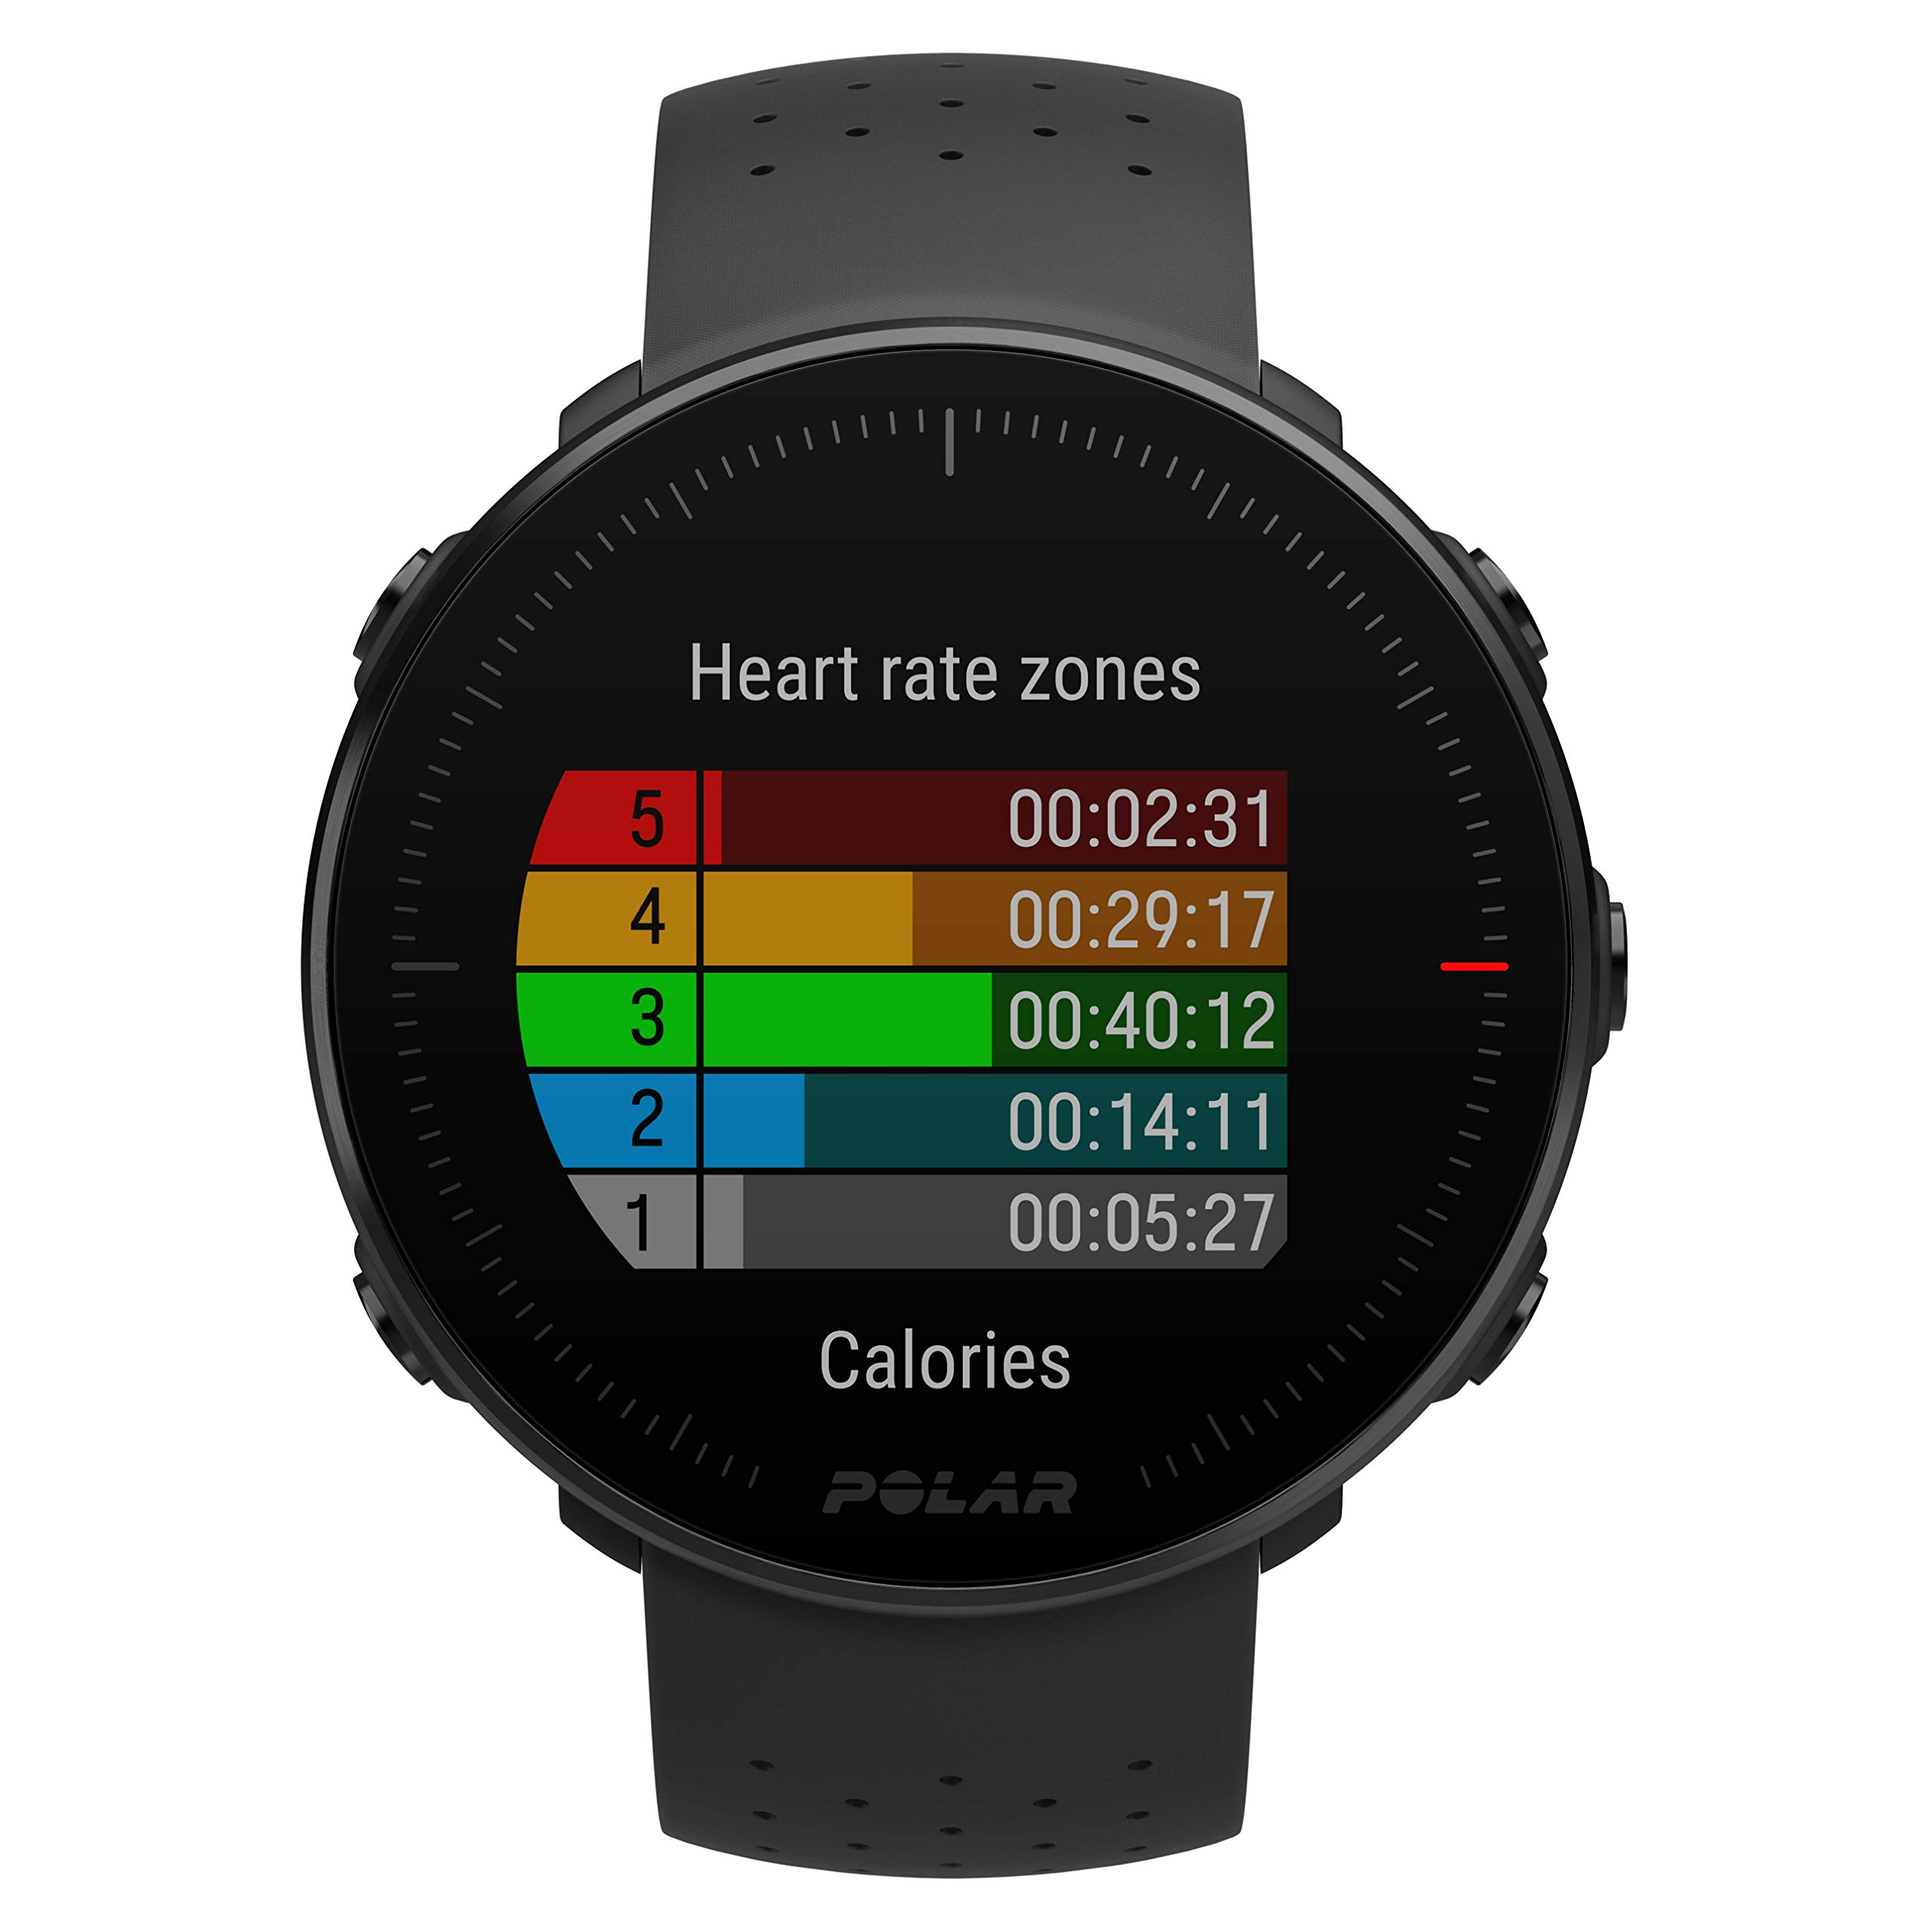 POLAR VANTAGE M –Advanced Running & Multisport Watch with GPS and Wrist-based Heart Rate (Lightweight Design & Latest Technology), Black, M-L by Polar (Image #7)